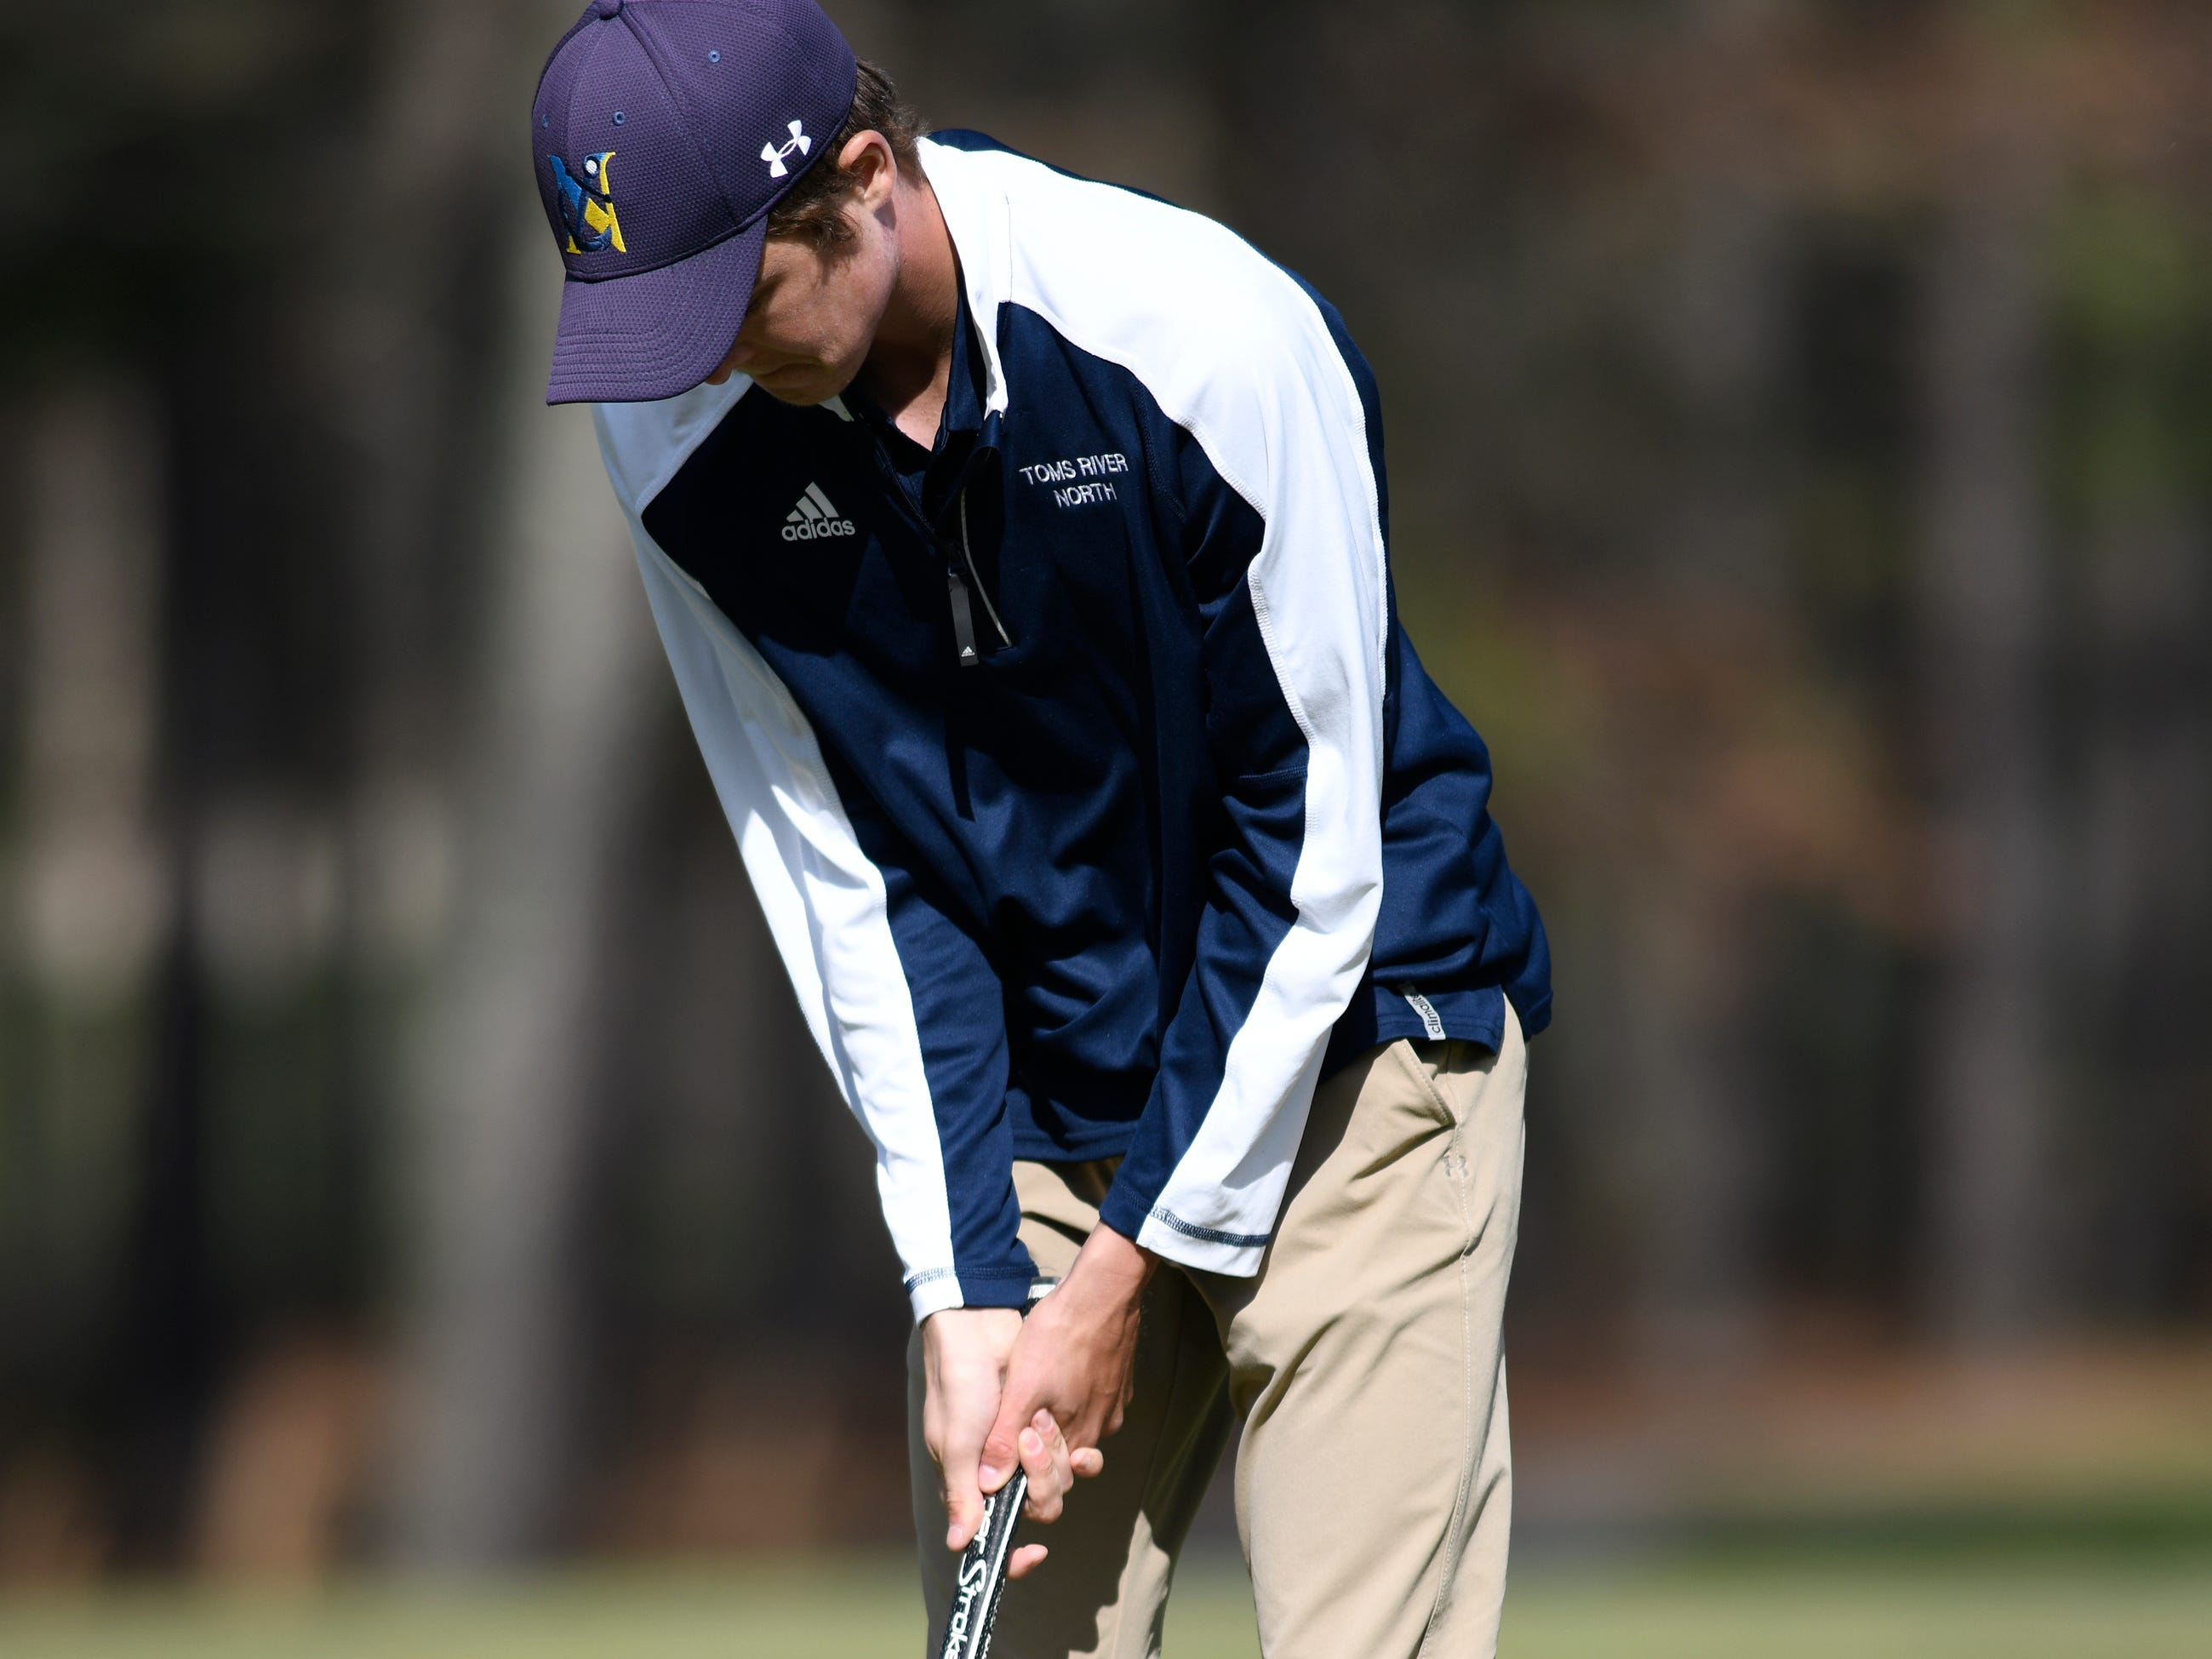 Connor Bekefi of Tome River North competes competes at the Ocean County Tournament on April 15, 2019,  at Sea Oaks in Little Egg Harbor.  Bekefi emerged as the individual champion with a 3-over-par 75, four shots better than teammate Leo Kane. Toms River North successfully defended its team title, posting a total of 336, which was 18 shots better than Southern. Brick Memorial finished third.